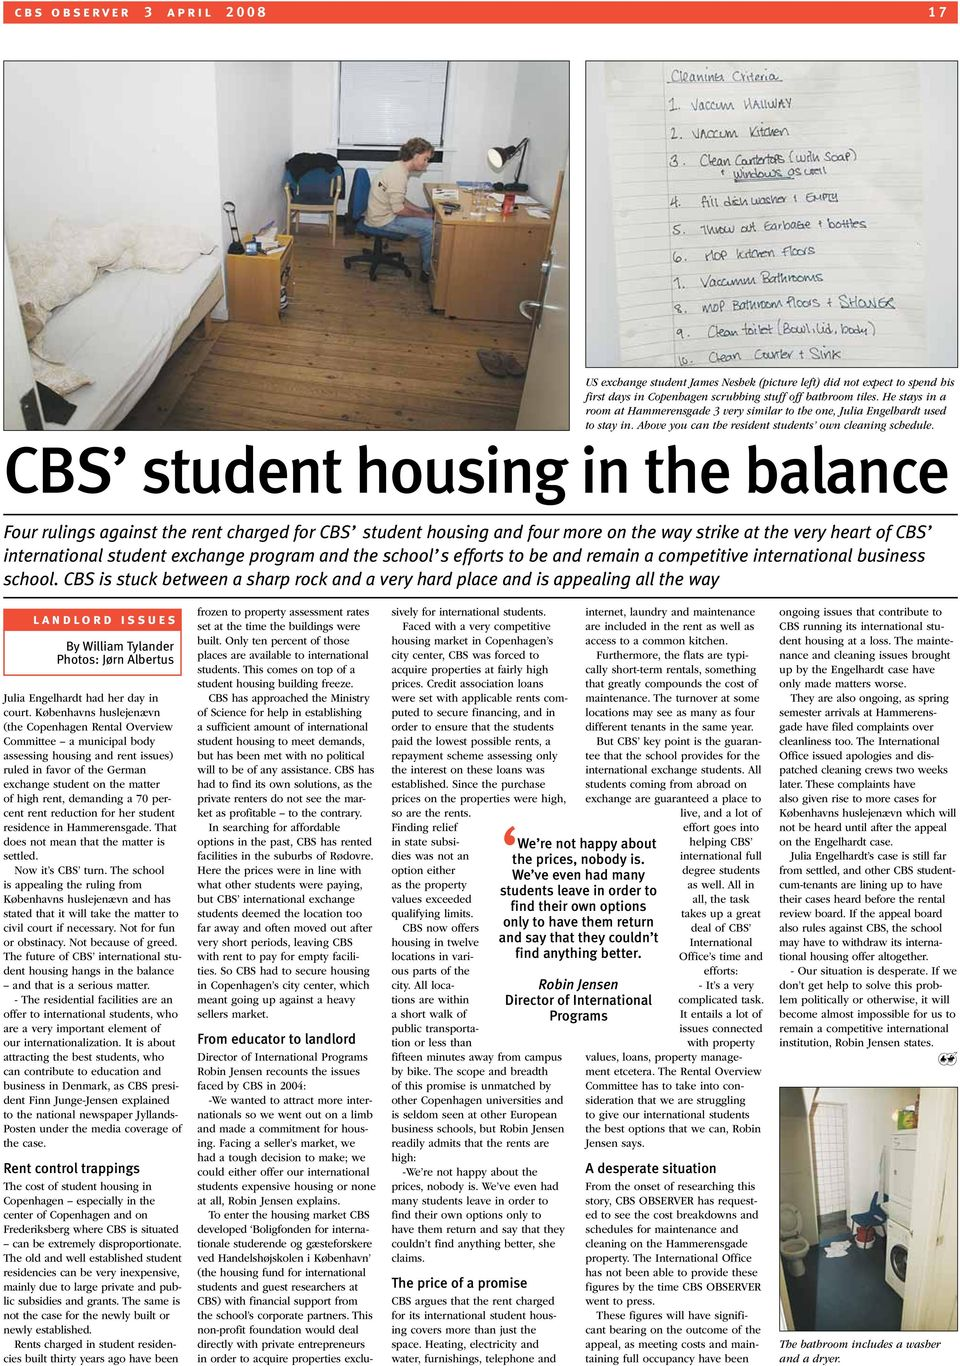 CBS student housing in the balance Four rulings against the rent charged for CBS student housing and four more on the way strike at the very heart of CBS international student exchange program and